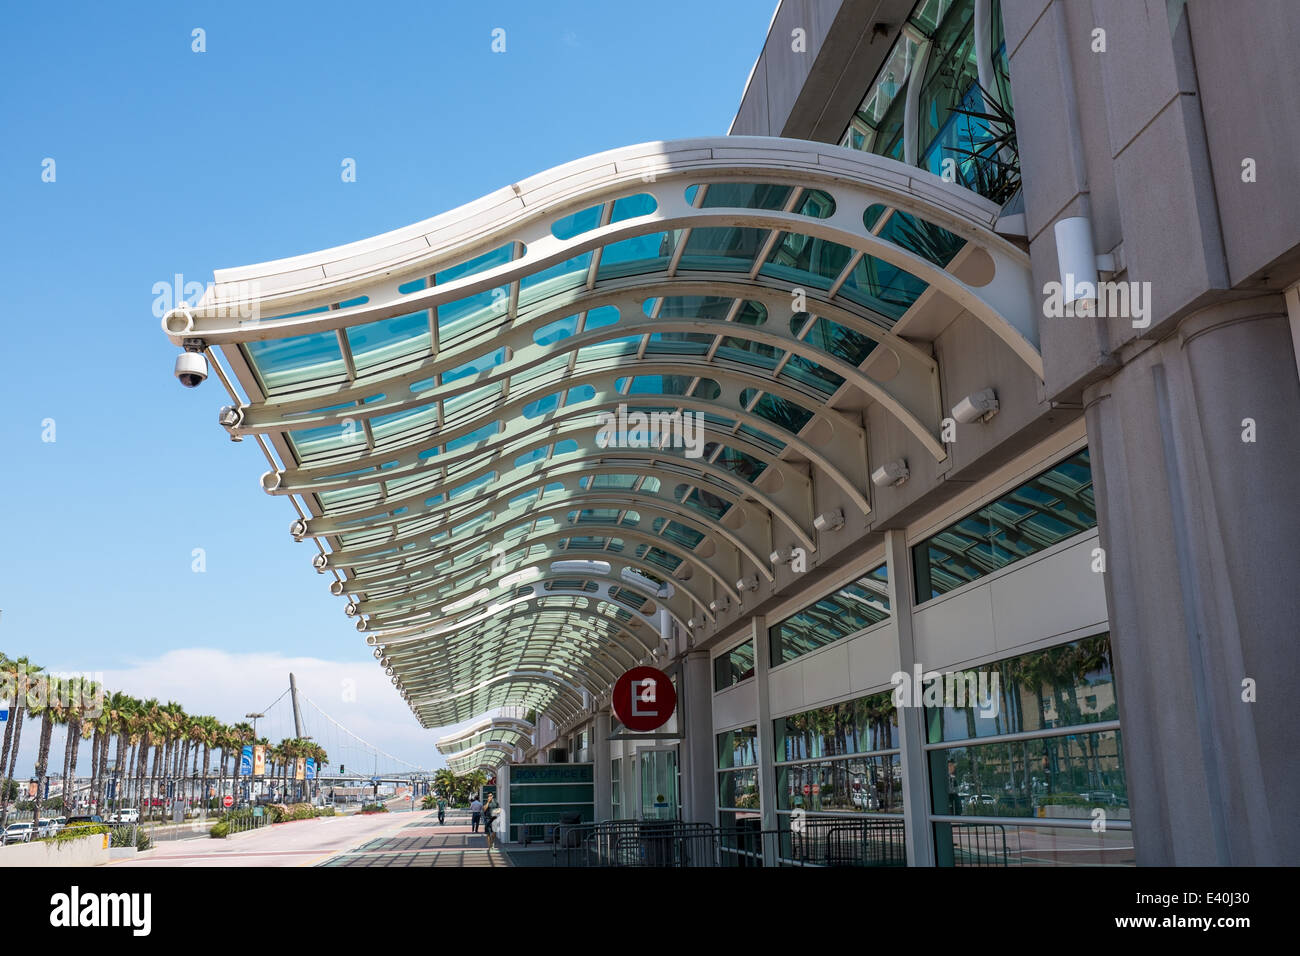 Curved glass roof at entrance to San Diego Convention Center, California, USA - Stock Image